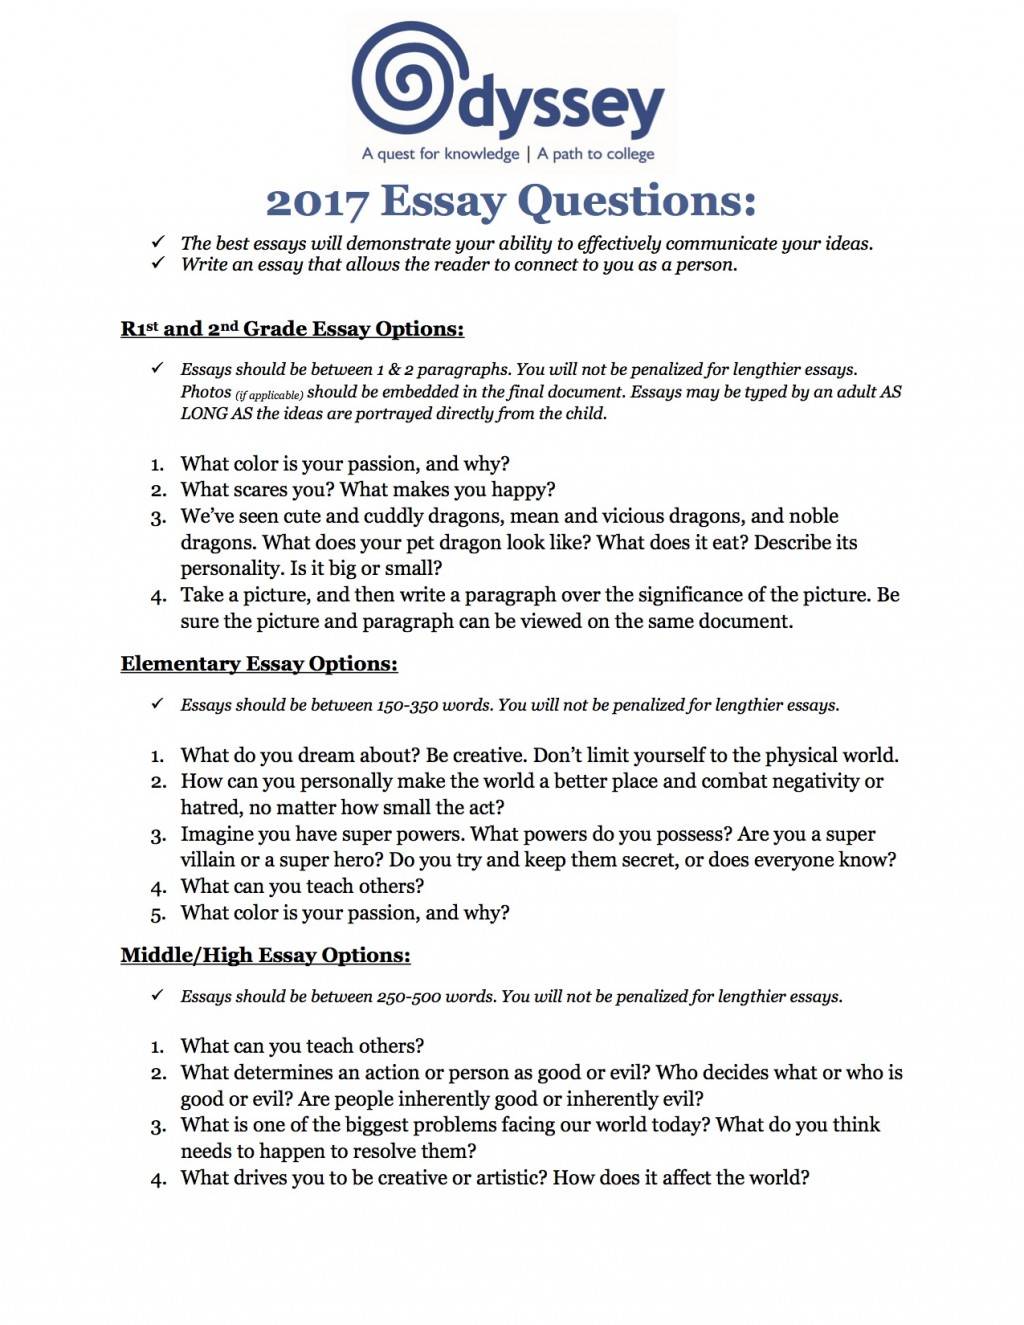 002 Odyssey Essay Topics 5829f1d2c75f9a7c5588b1c6 Proposed20essay20topics202017 Amazing Hero Prompt Large